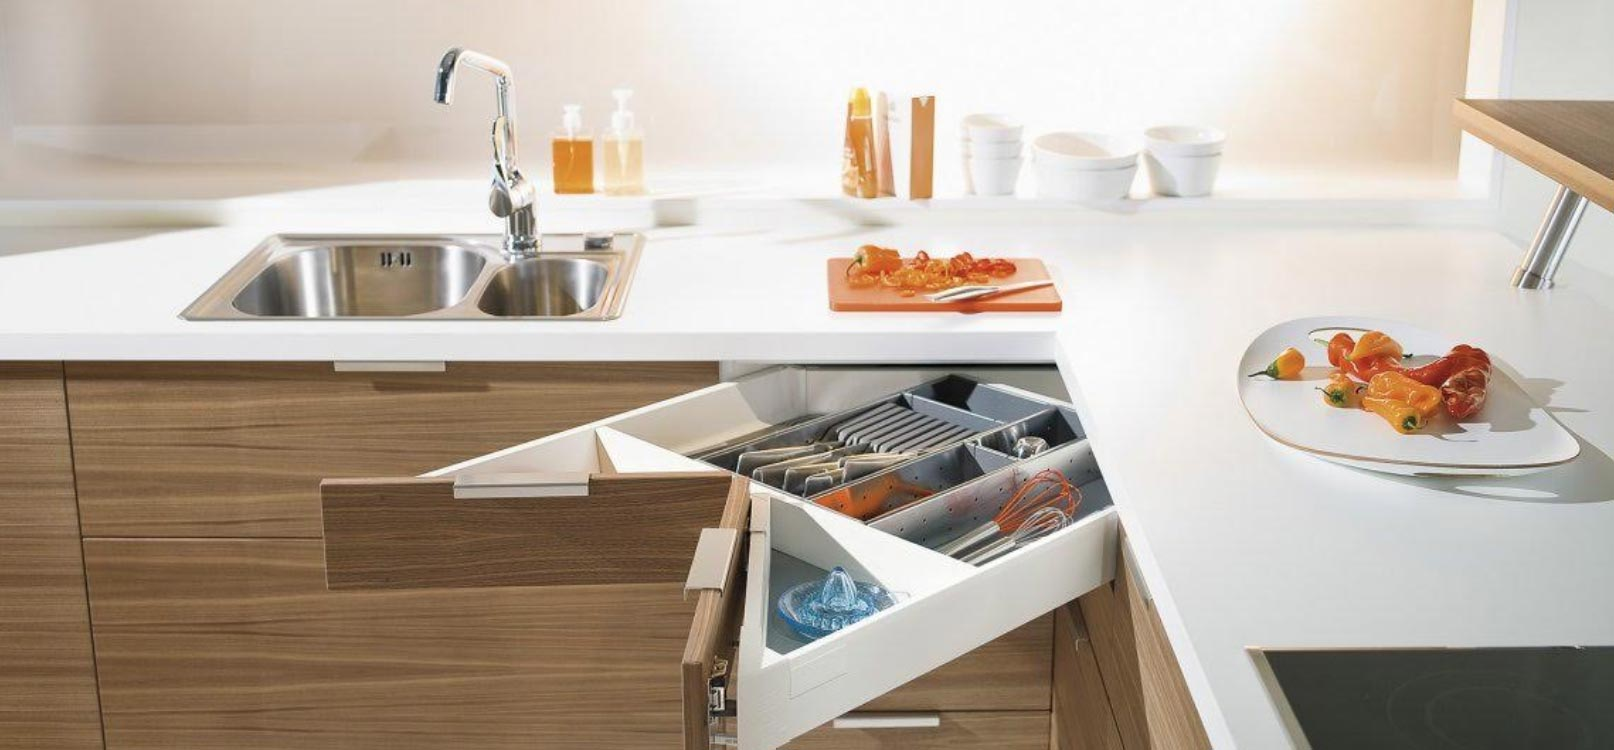 Kitchen Corner Pantry Solutions – Styling Up As Per Usage Convenience